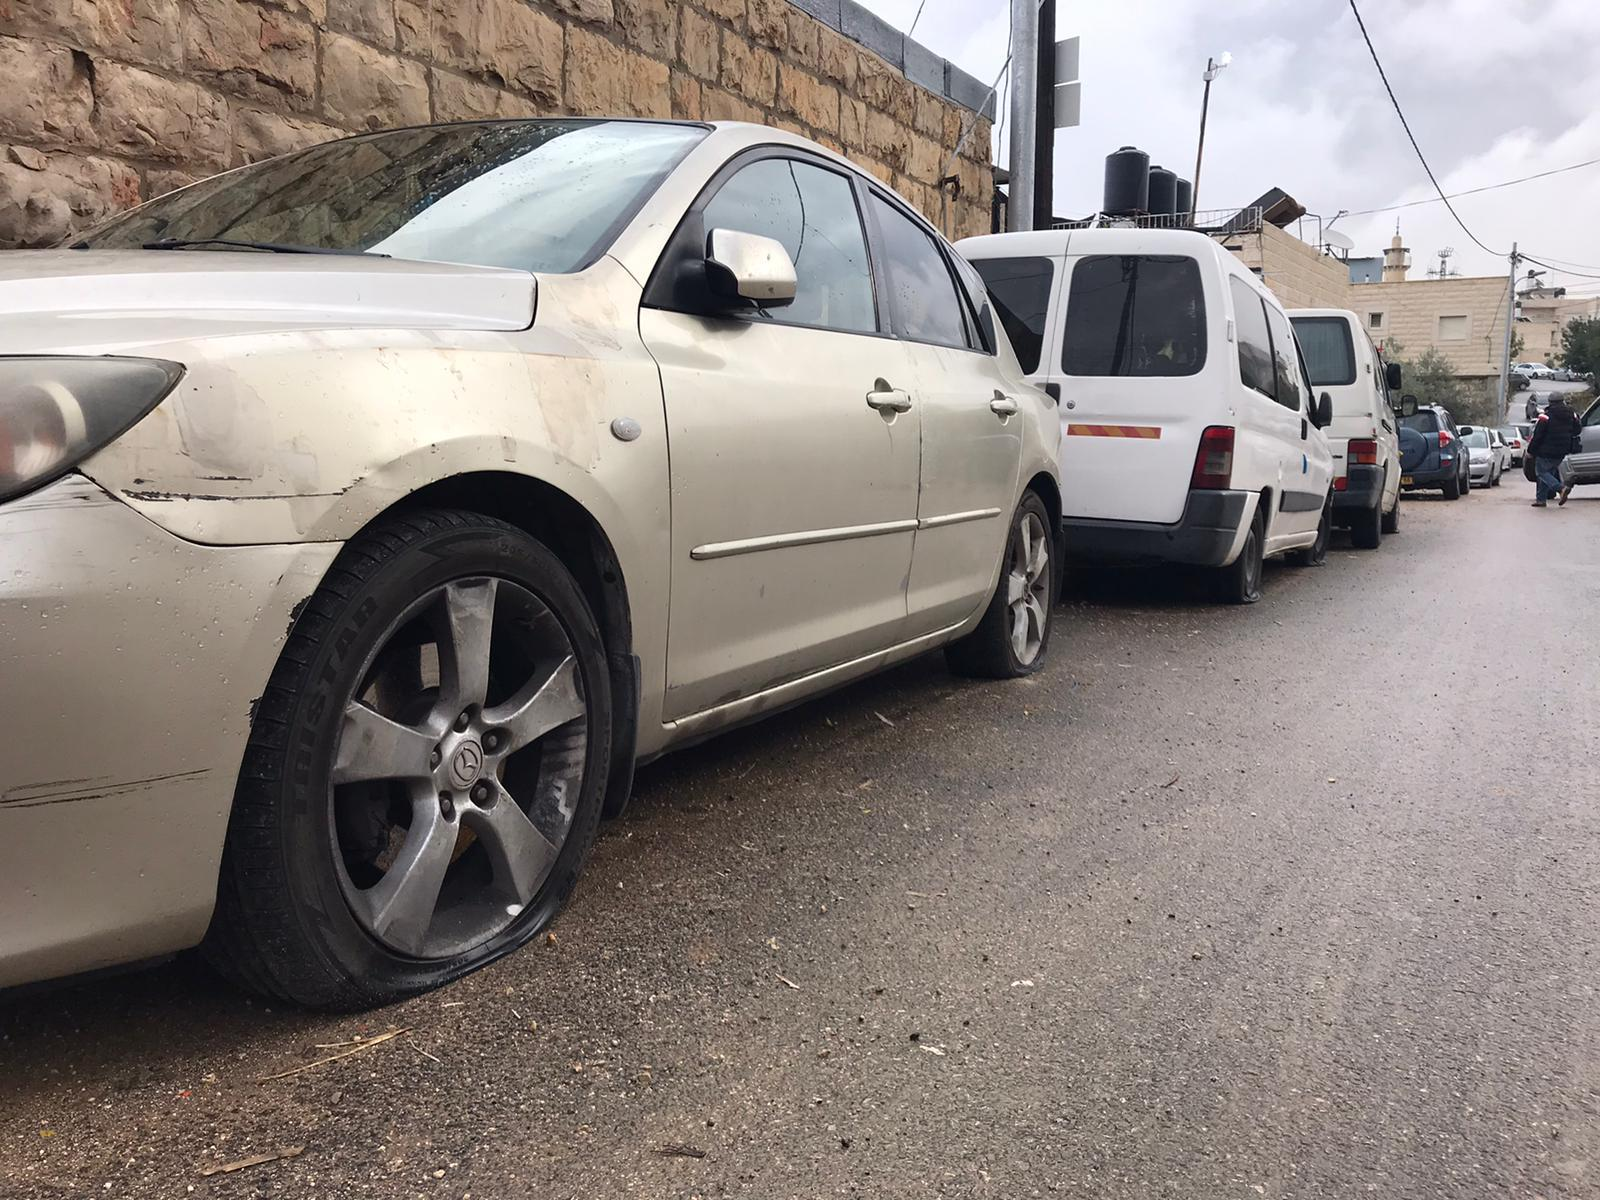 Palestinian cars and homes vandalised in 'price-tag' attacks in East Jerusalem